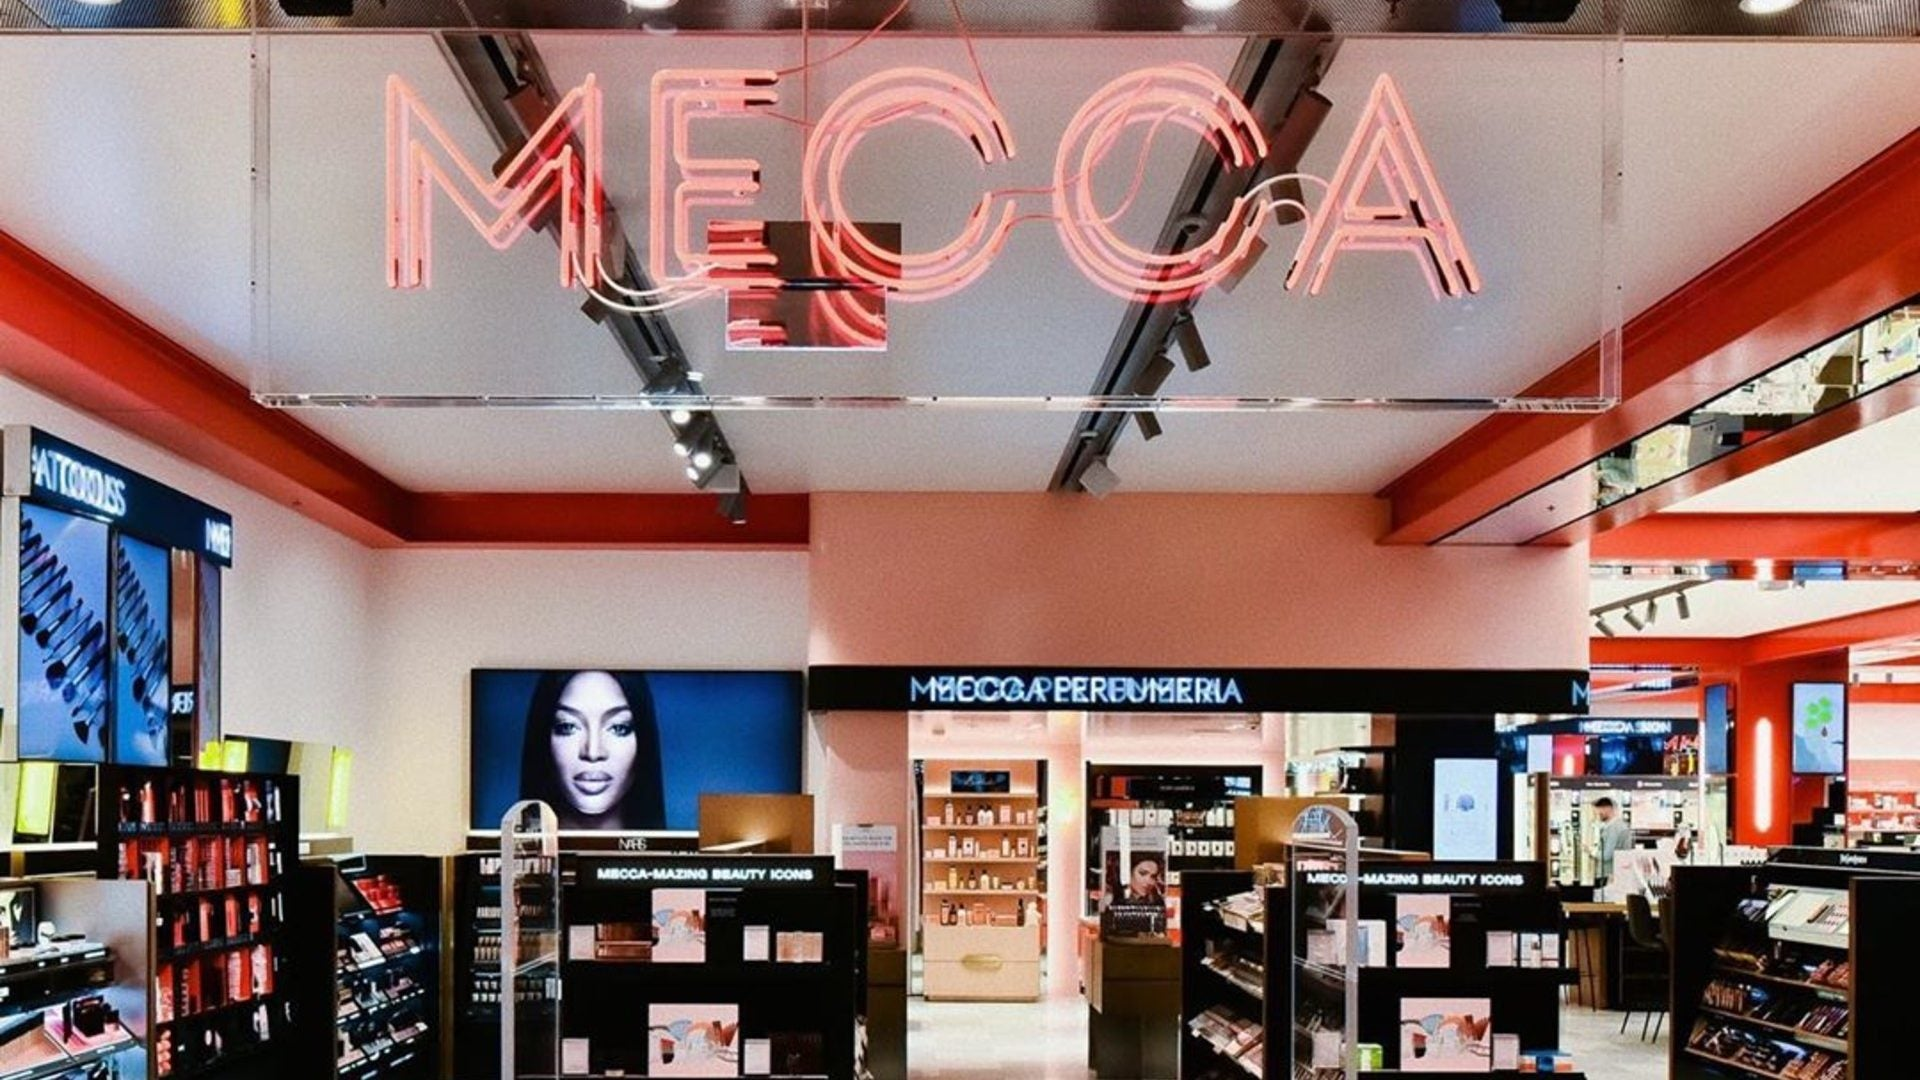 Beauty Fans Sound Off On Mecca Cosmetica's Use Of The Holy City In Its Name